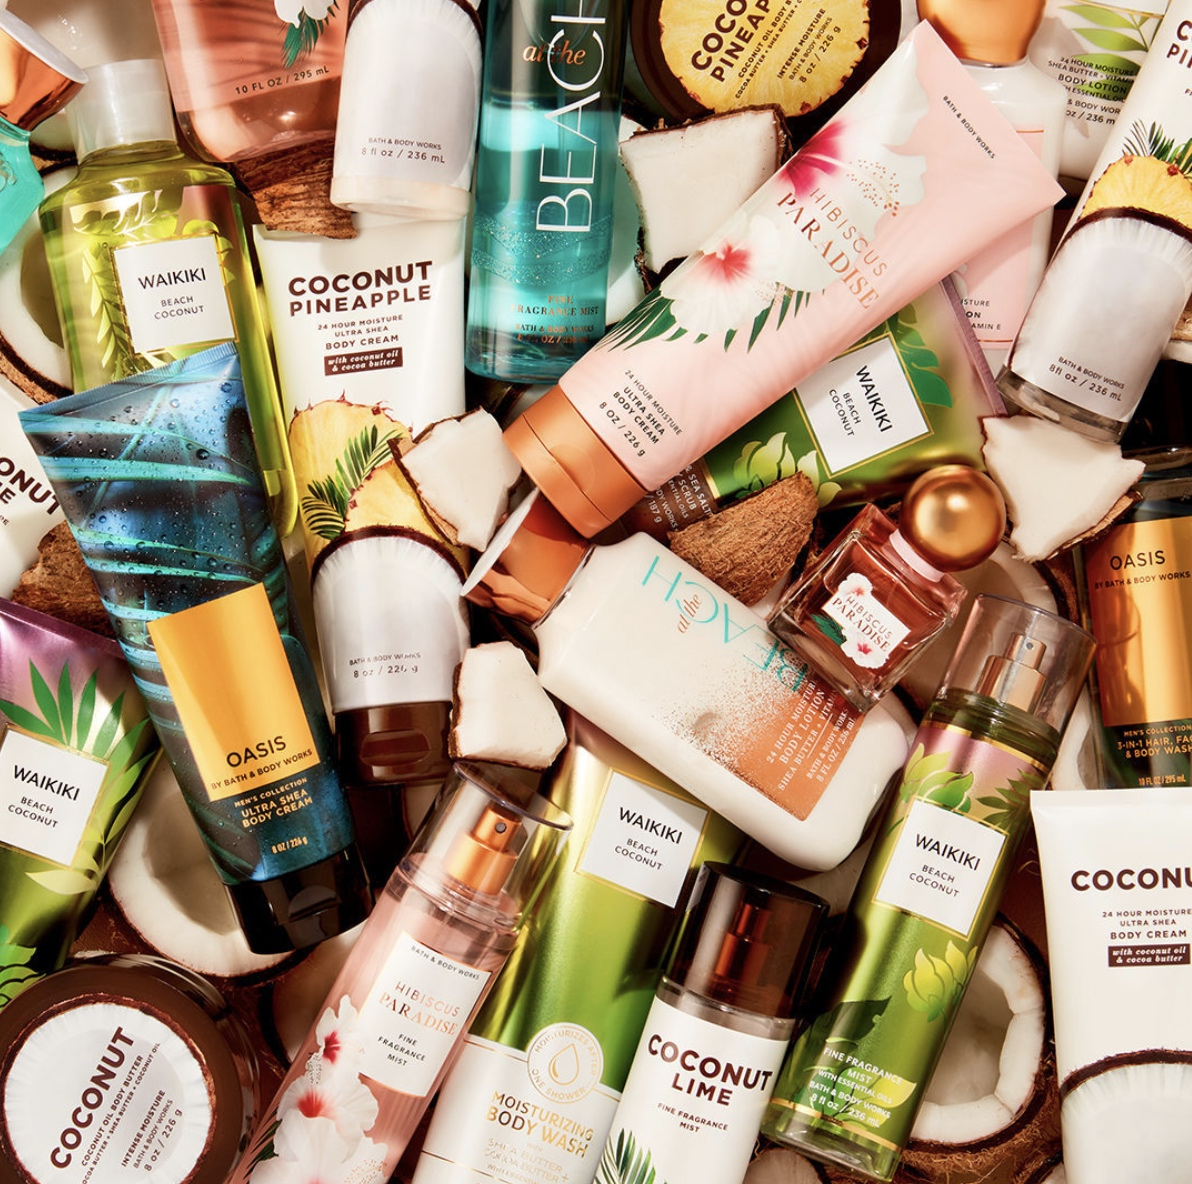 Go Nuts for Coconuts from Bath & Body Works